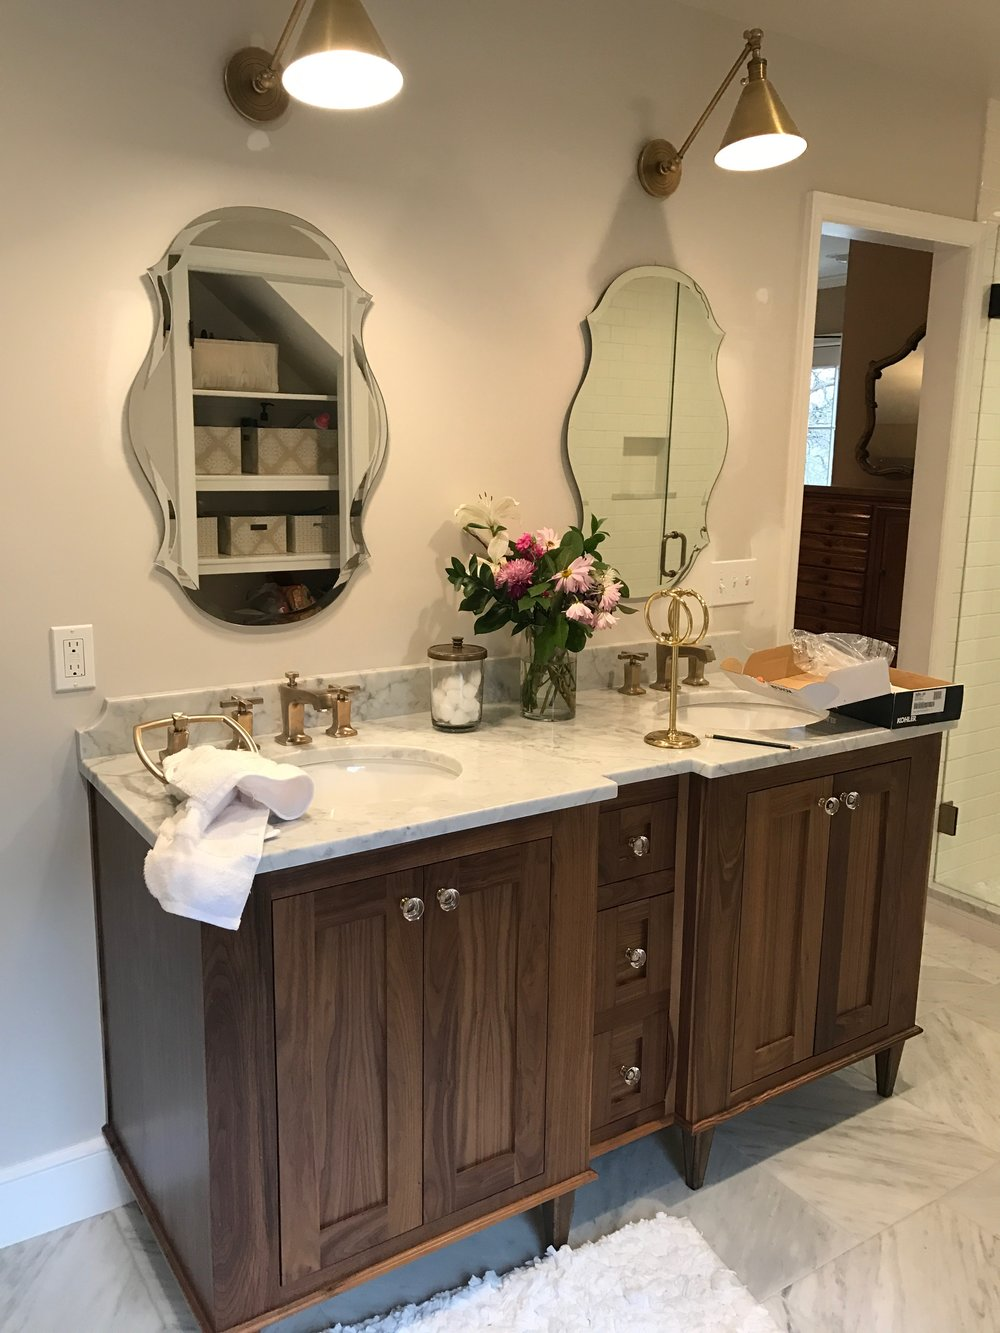 One sneak peak at my new favorite master bath!  Kay Julian's upstairs master bath is transformed.  Stay tuned for more on this story.